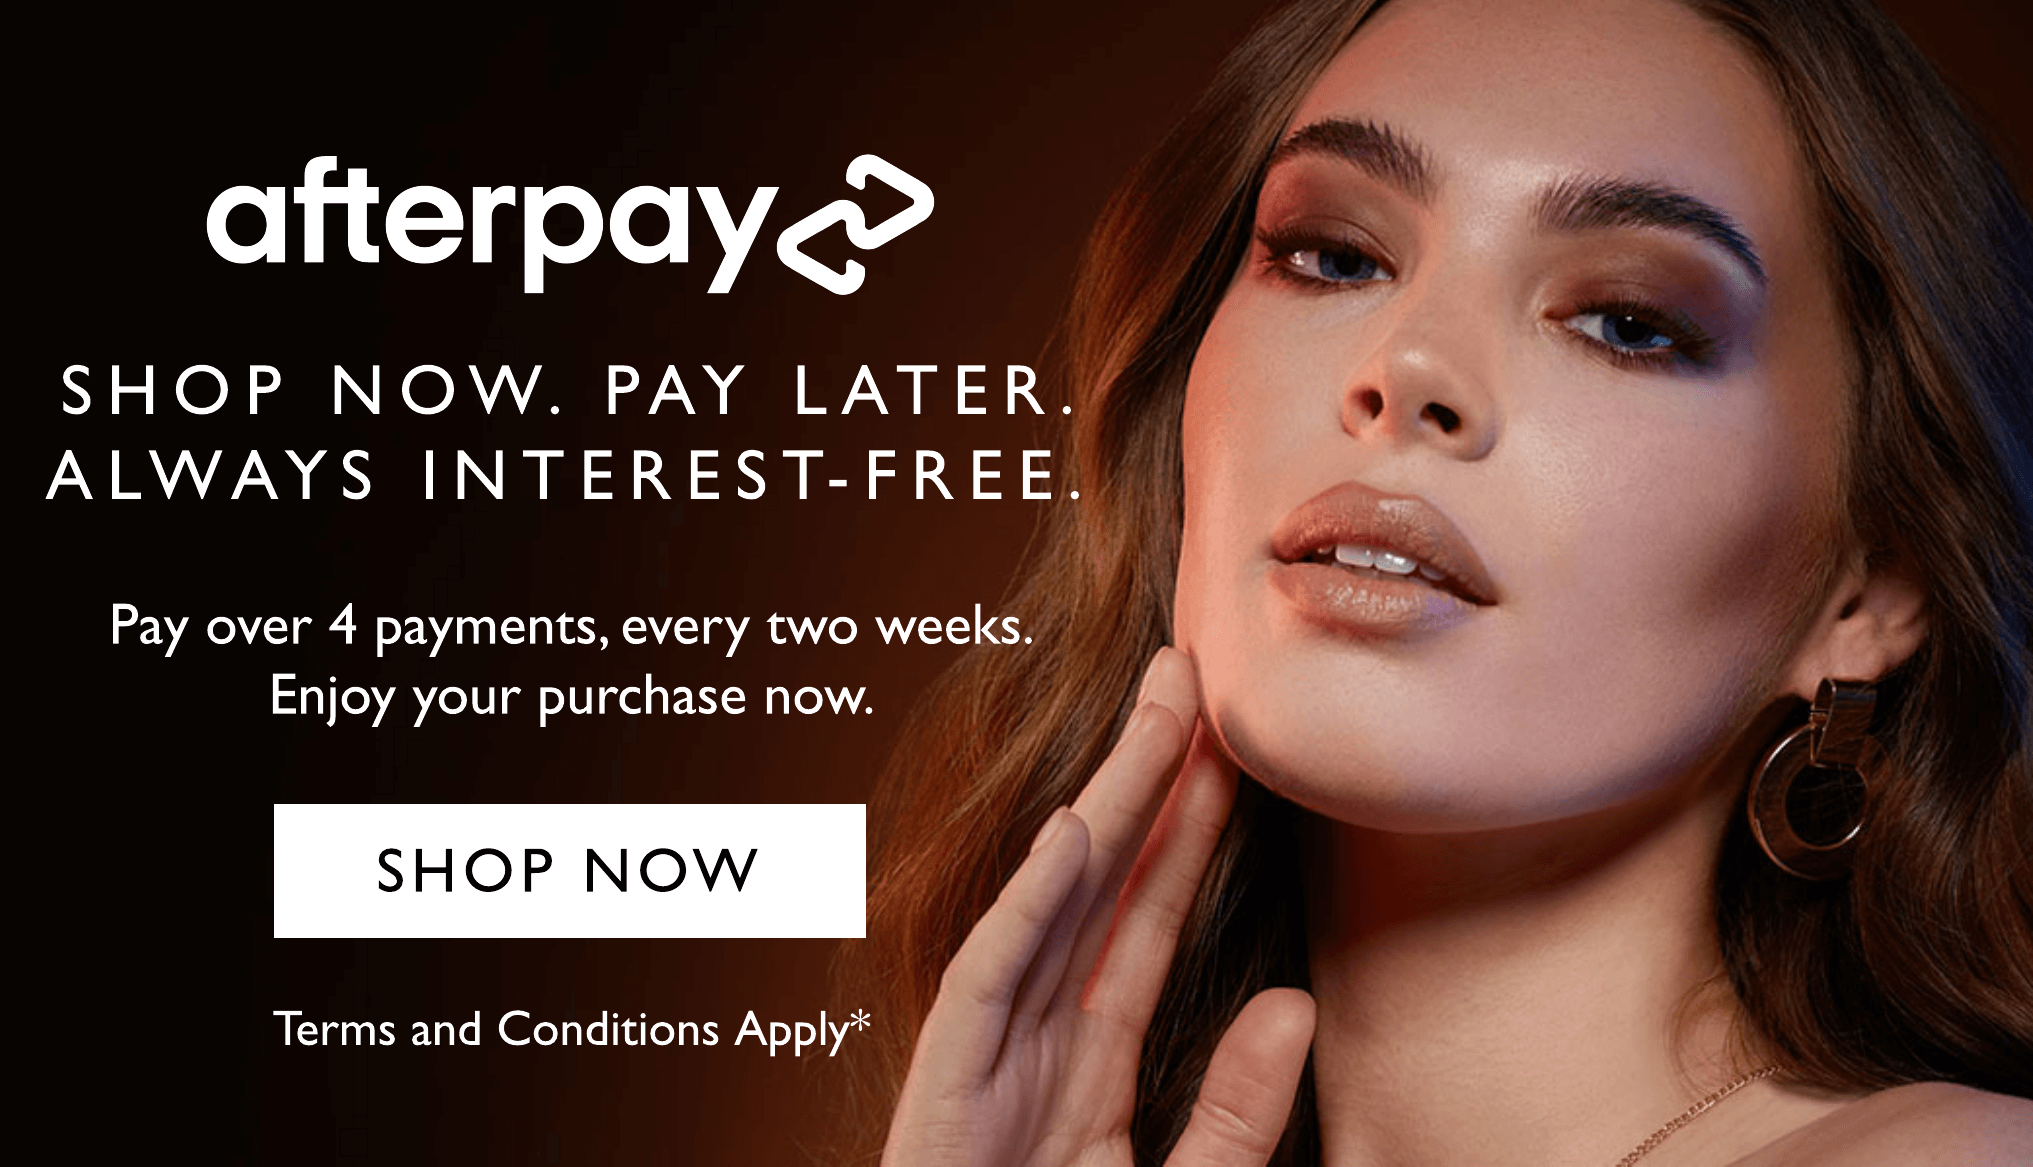 Afterpay, 4 easy payments